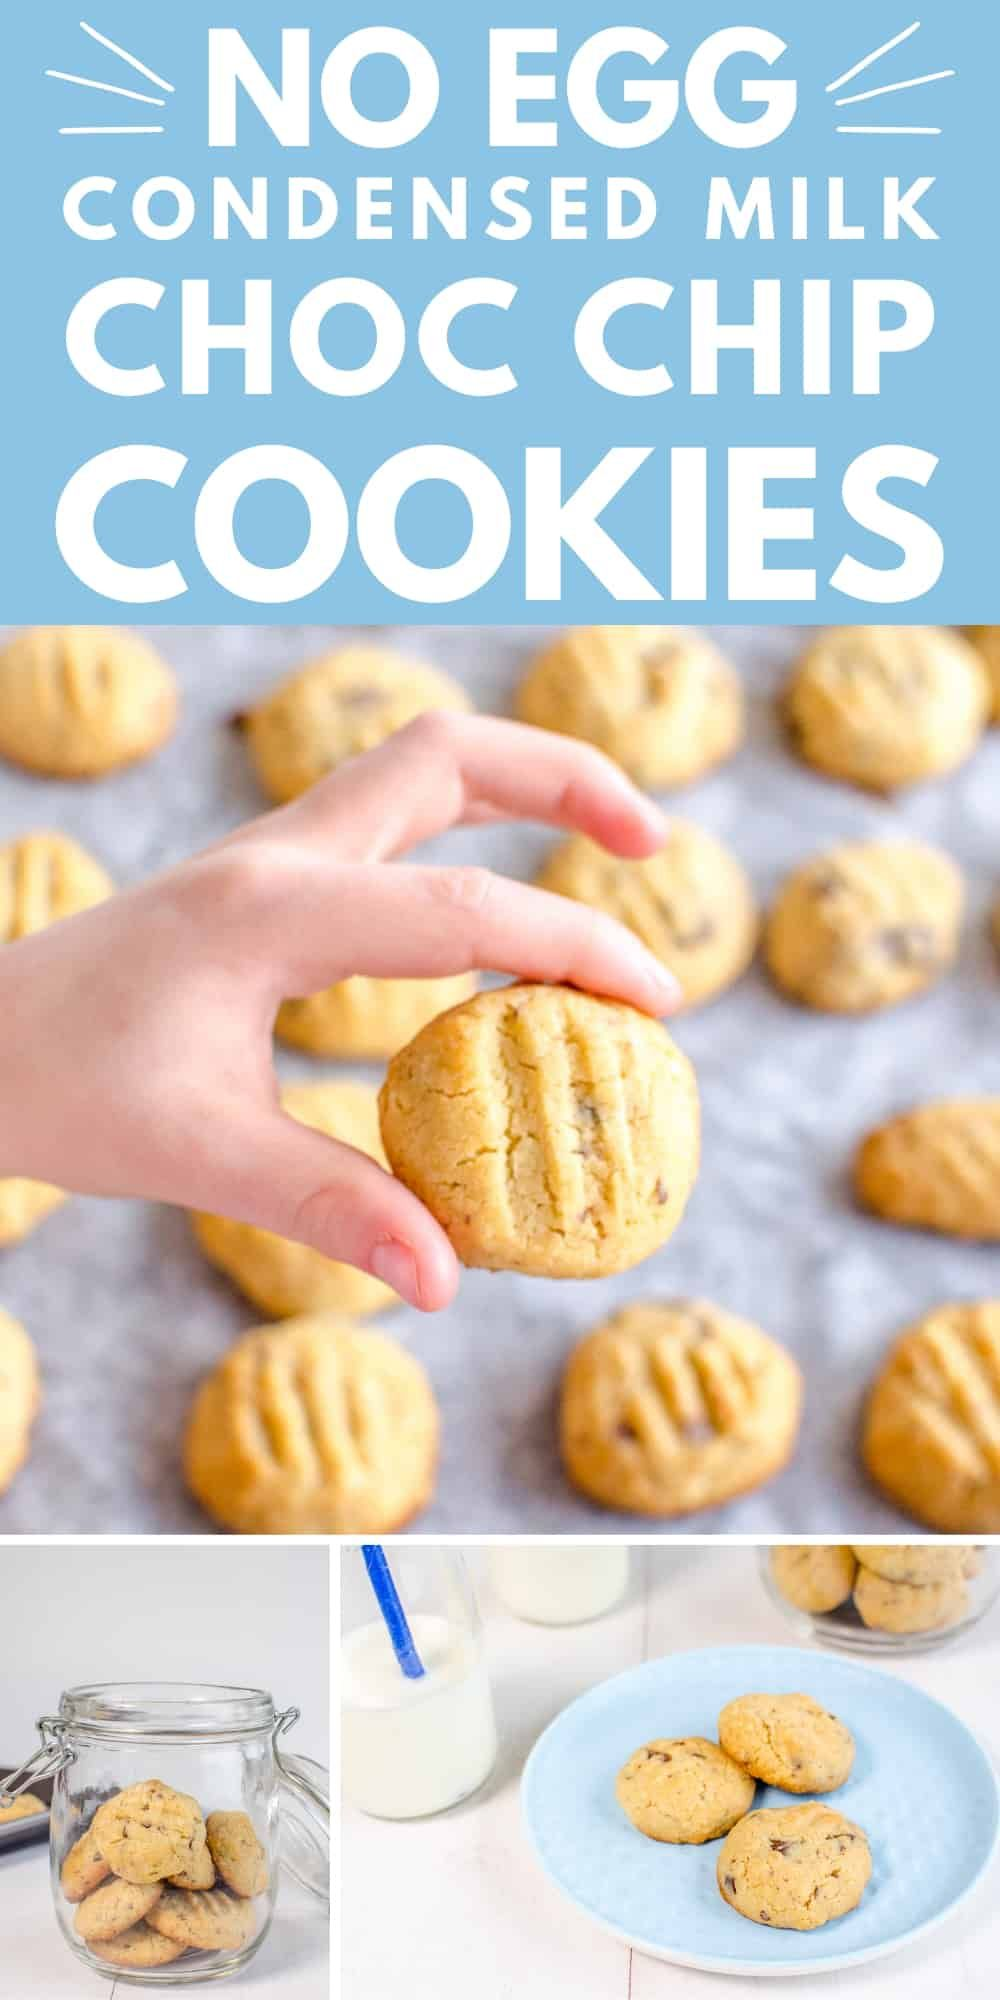 My Fav Choc Chip Cookies In 2020 Choc Chip Cookies Easy Cookie Recipes Chocolate Chip Cookies